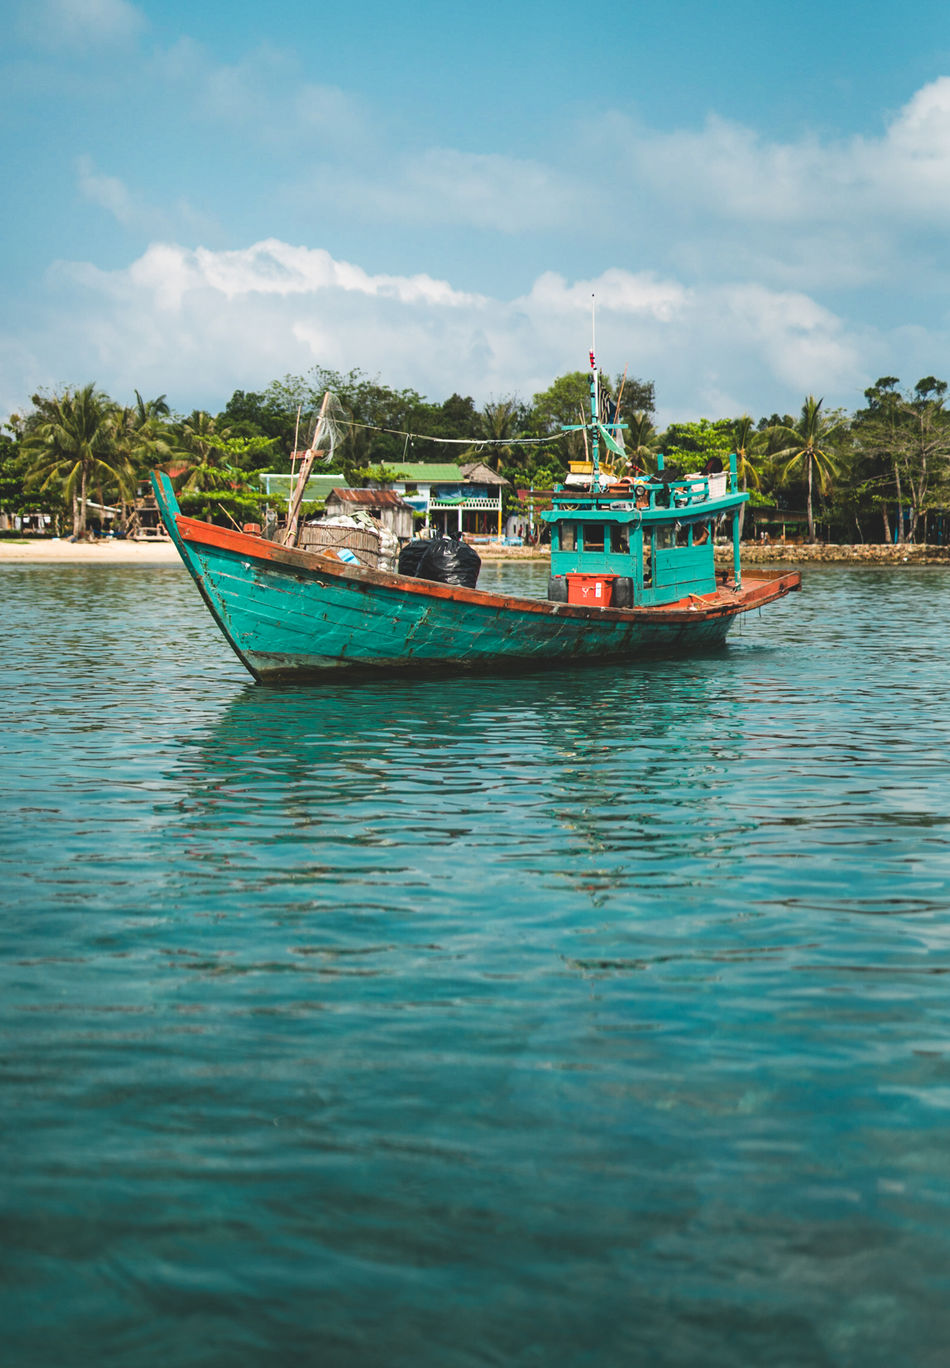 Cambodia fishing boats are swagged out 💯 Nautical Vessel Cloud - Sky Sea Water Transportation Tourism Travel Outdoors Travel Destinations Vacations Beach Nature Sky No People Day Travel Photography Cambodia Vacations Showcase: April Tropical ASIA Nautical Fisherman Travel Neon